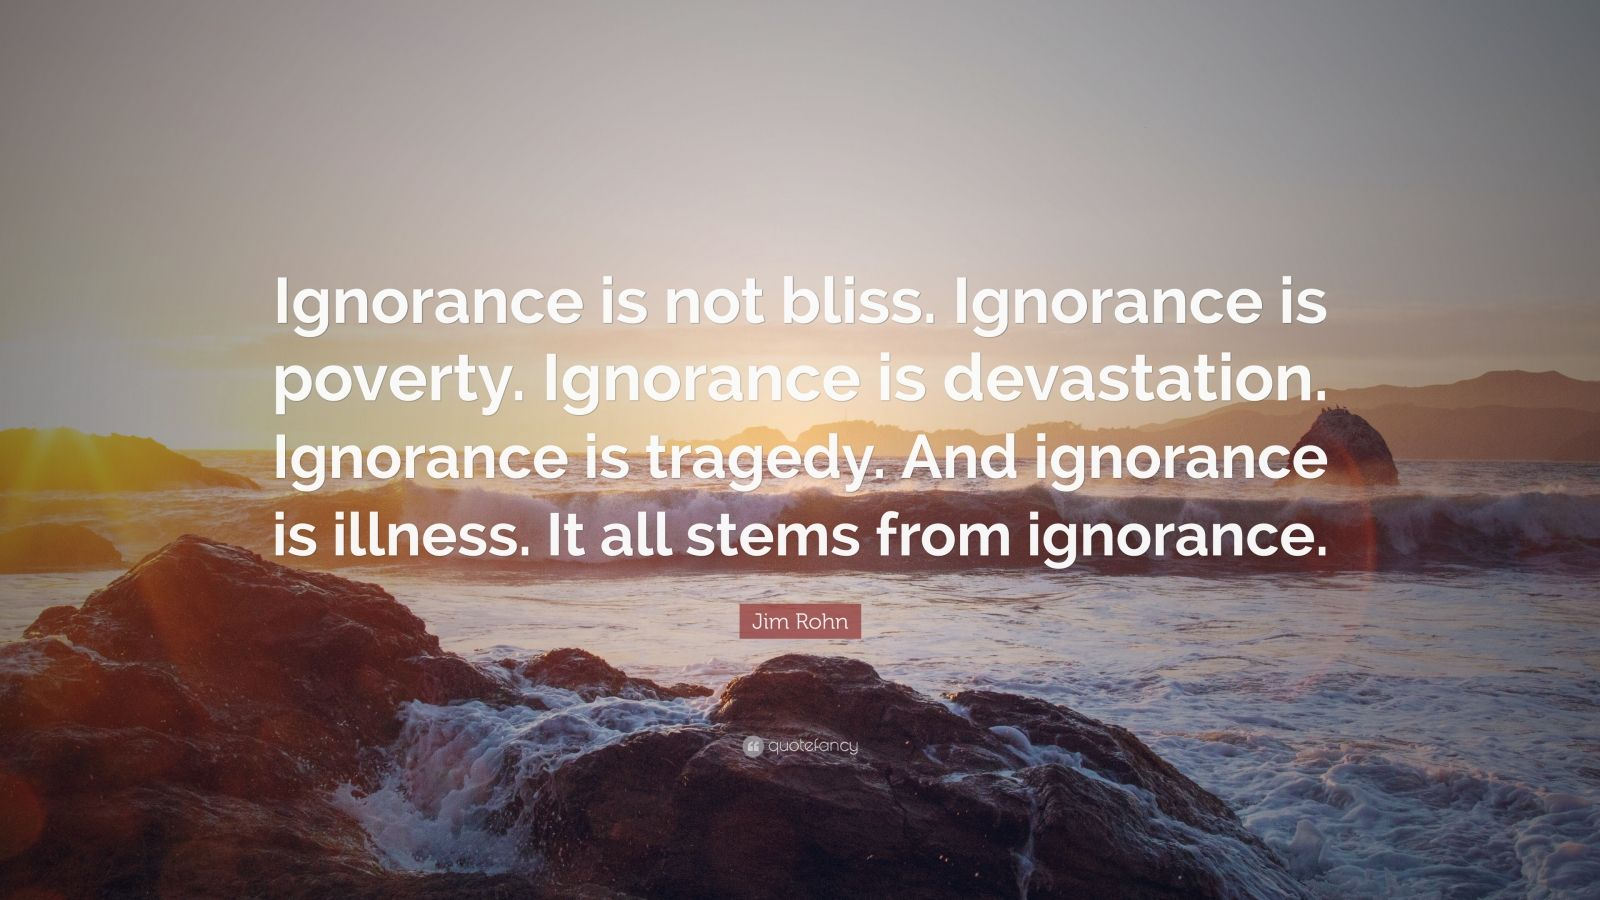 """Jim Rohn Quote: """"Ignorance is not bliss. Ignorance is poverty. Ignorance is devastation. Ignorance is tragedy. And ignorance is illness. It all stems from ignorance."""""""